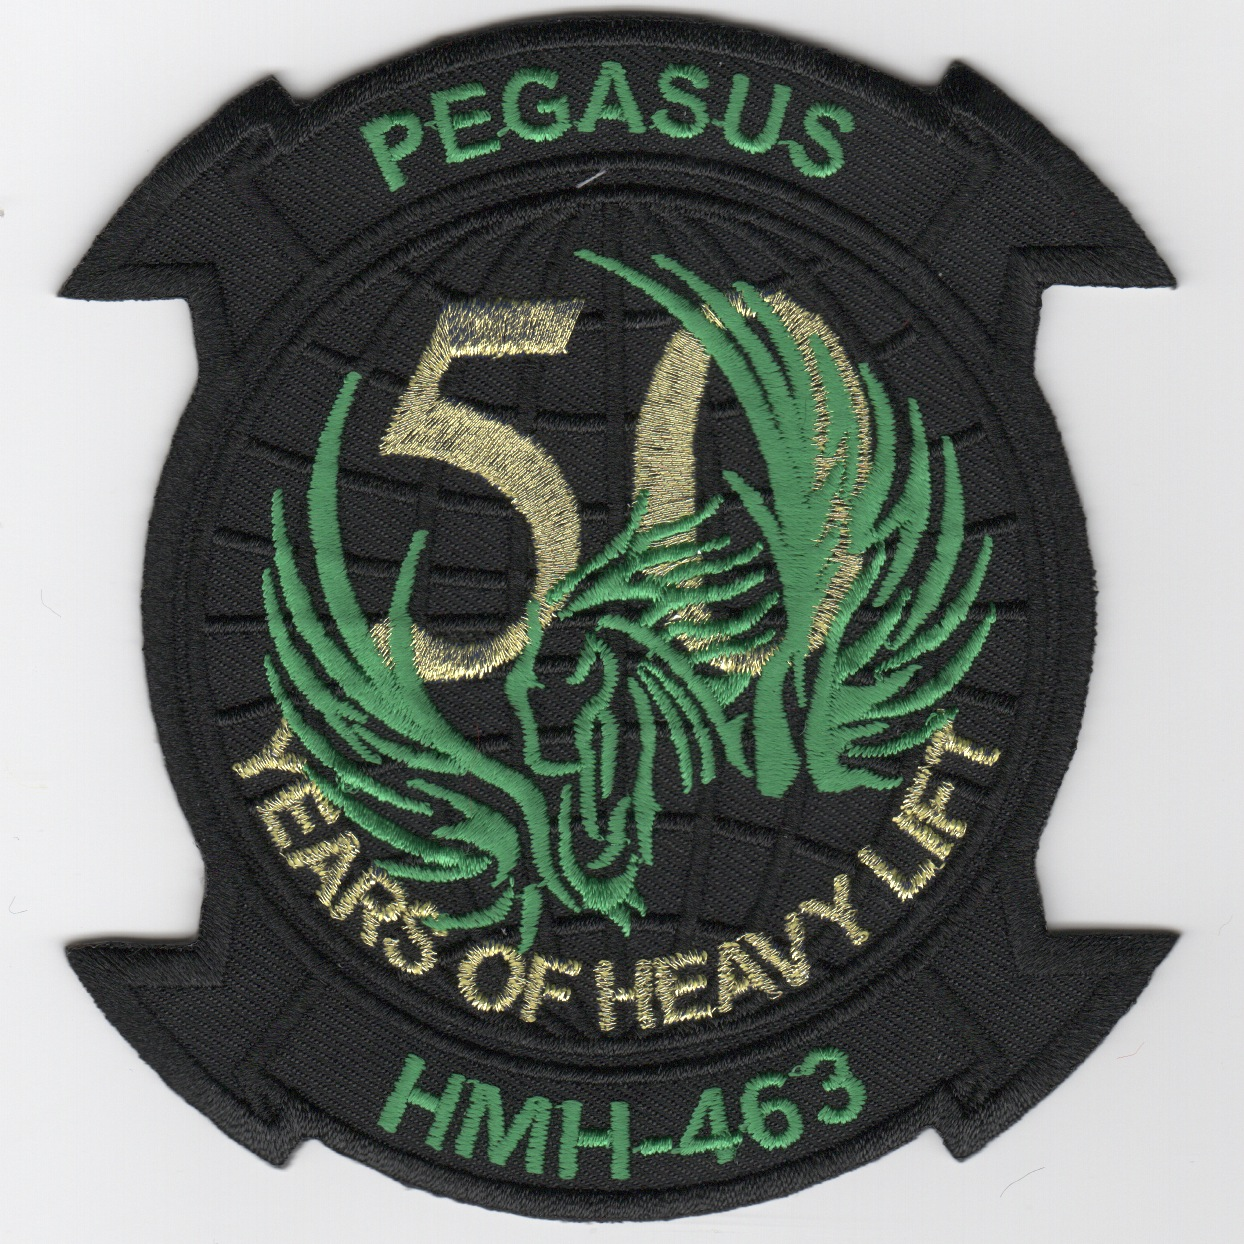 HMH-463 '50th Anniv' Patch (Black)